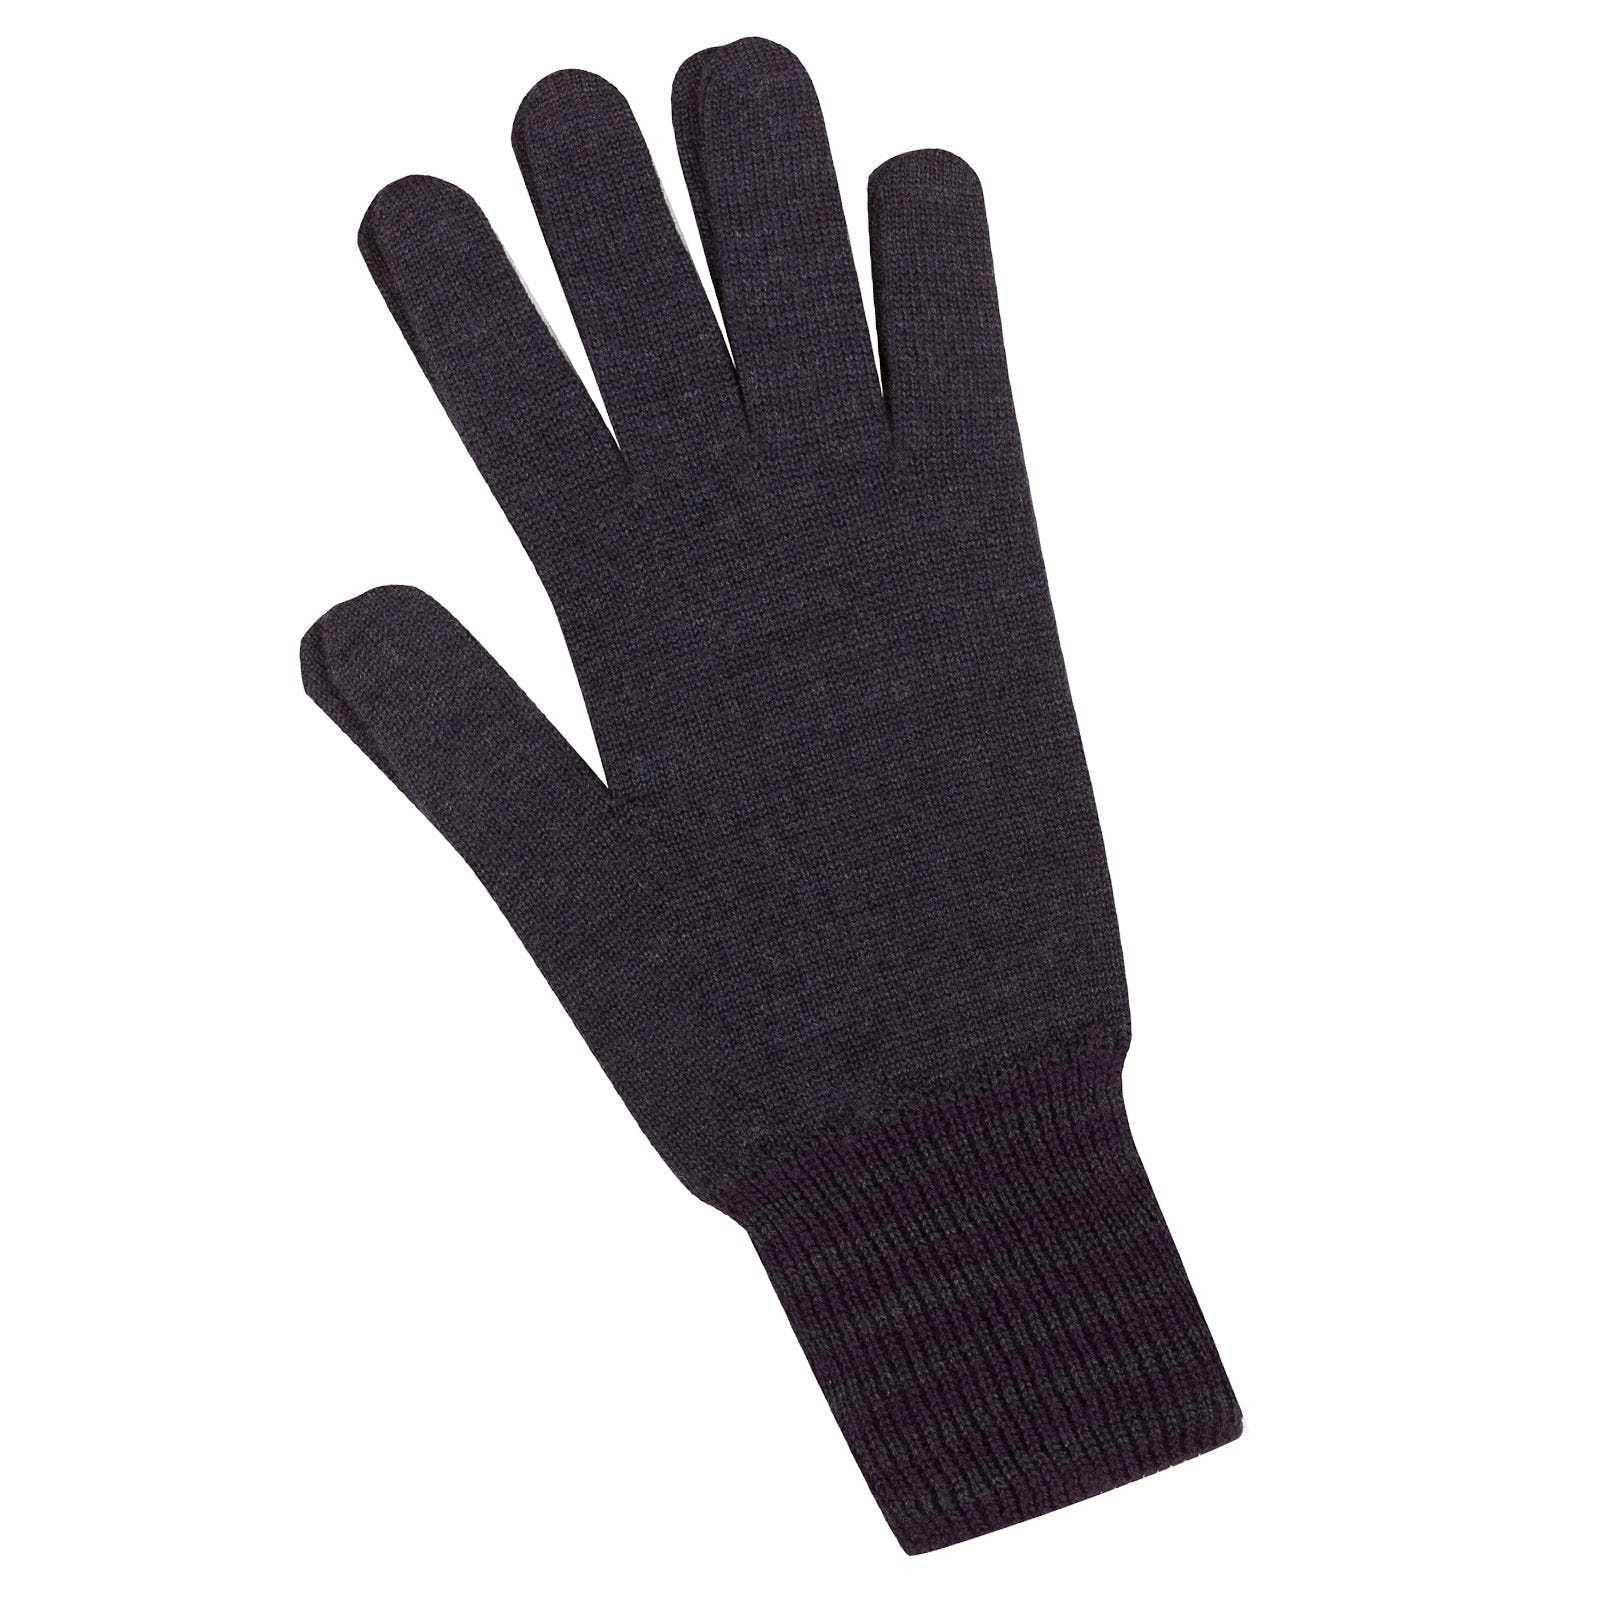 John Smedley Cooley Merino Wool Gloves in Hepburn Smoke-m/l